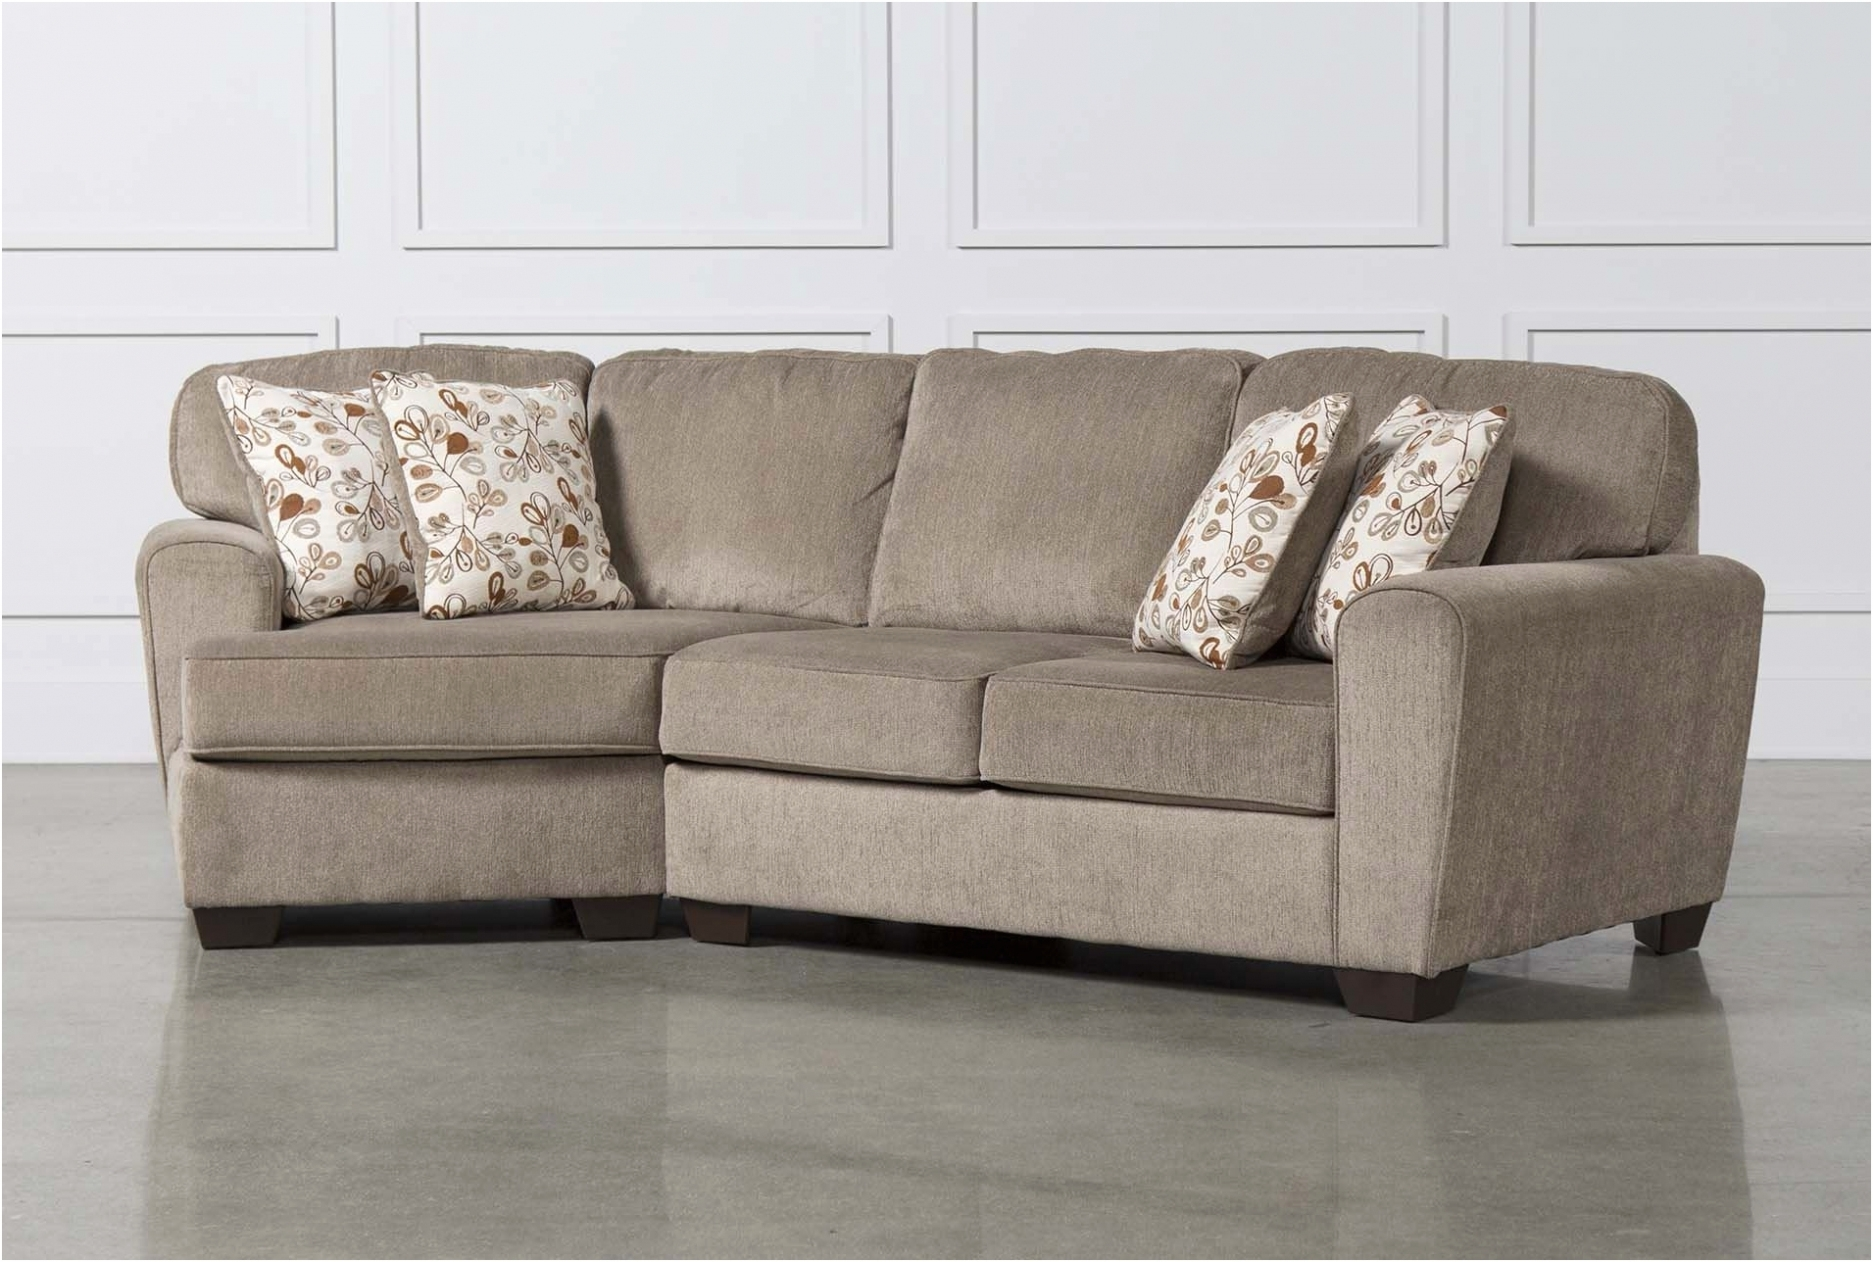 Living Spaces Sectional Sofa Bed - Sofa Design Ideas intended for Aspen 2 Piece Sleeper Sectionals With Raf Chaise (Image 18 of 30)